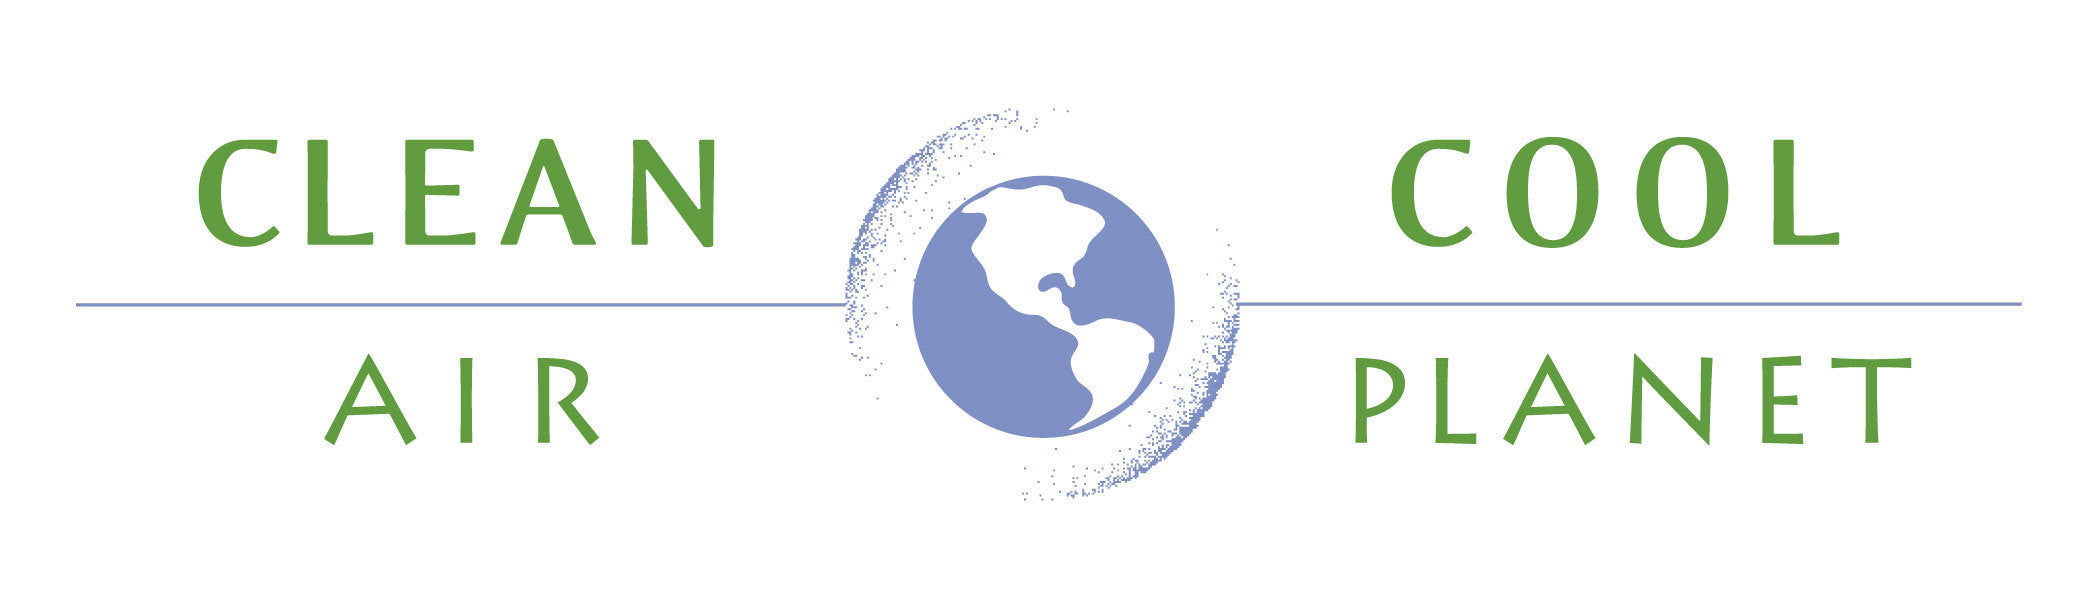 Clean Air Cool Planet logo